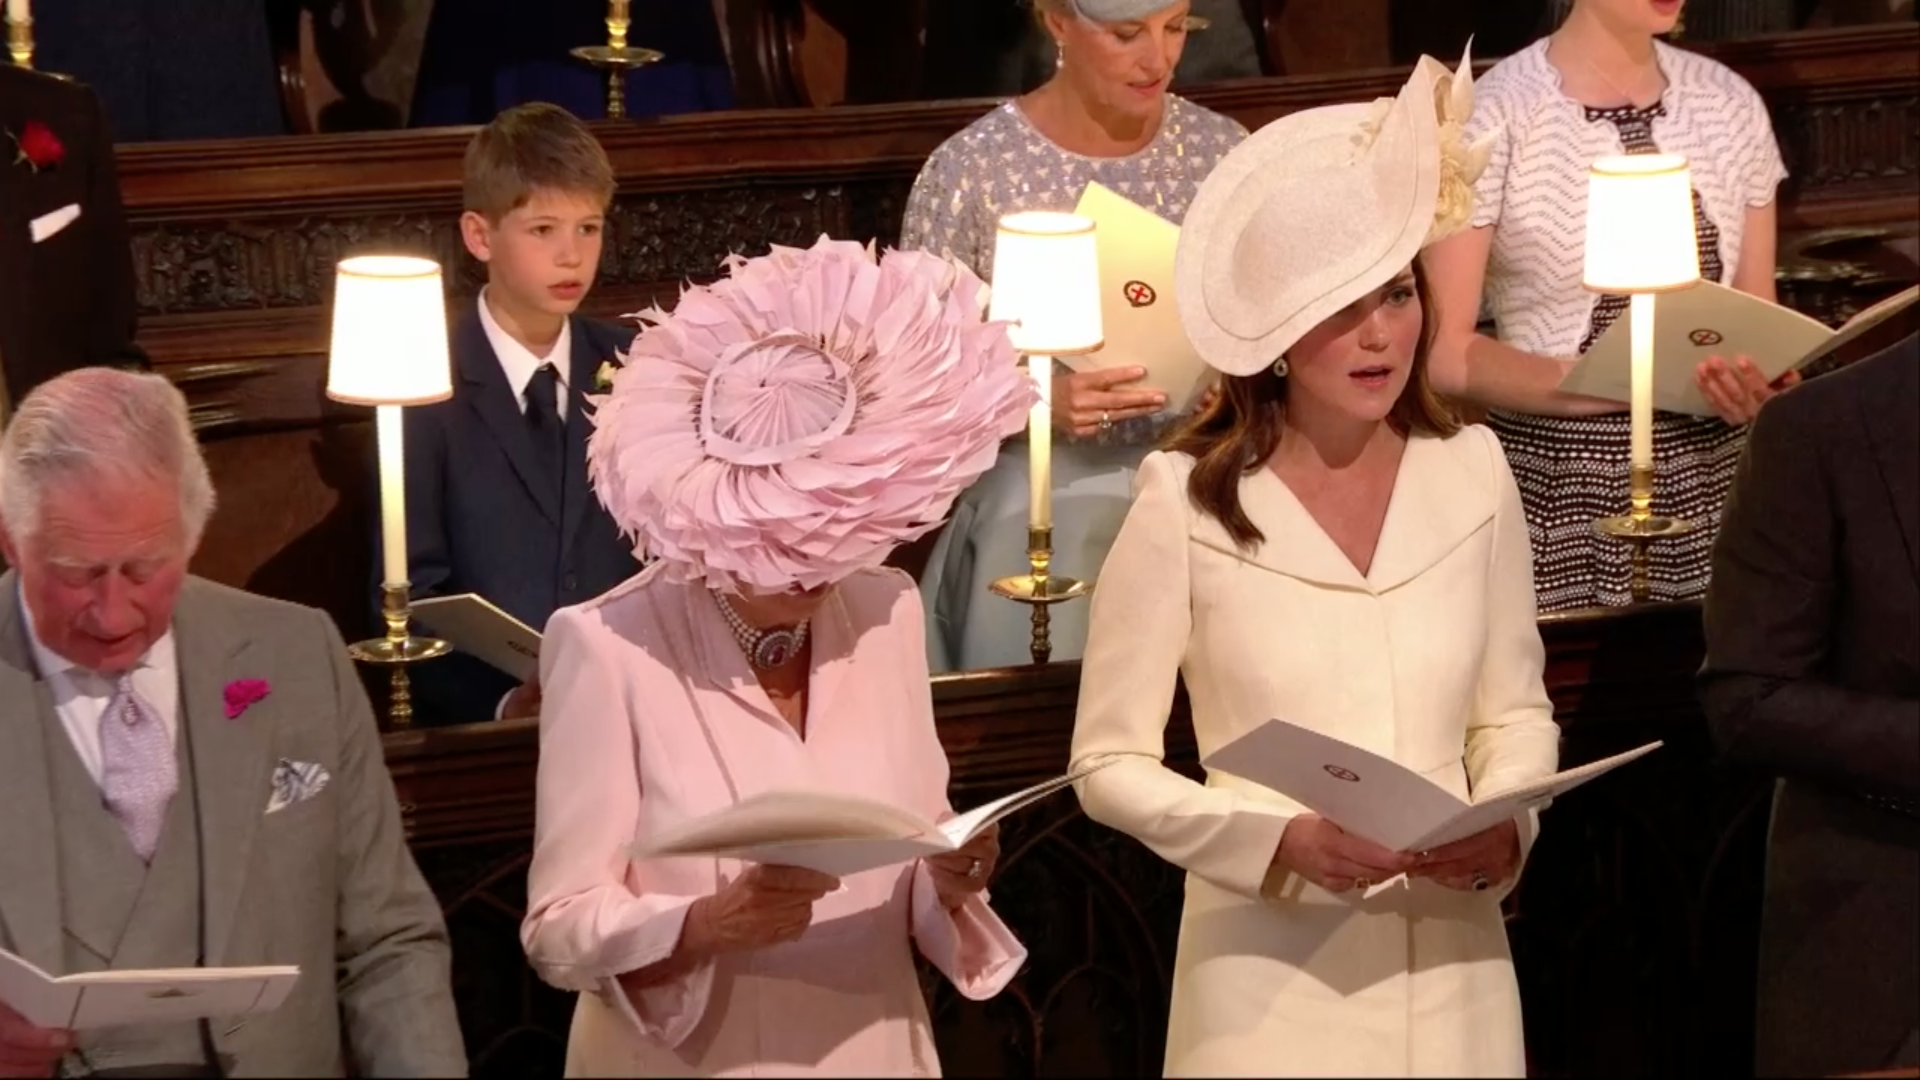 Kate Middleton Arrives at the Royal Wedding Less Than a Month After ...